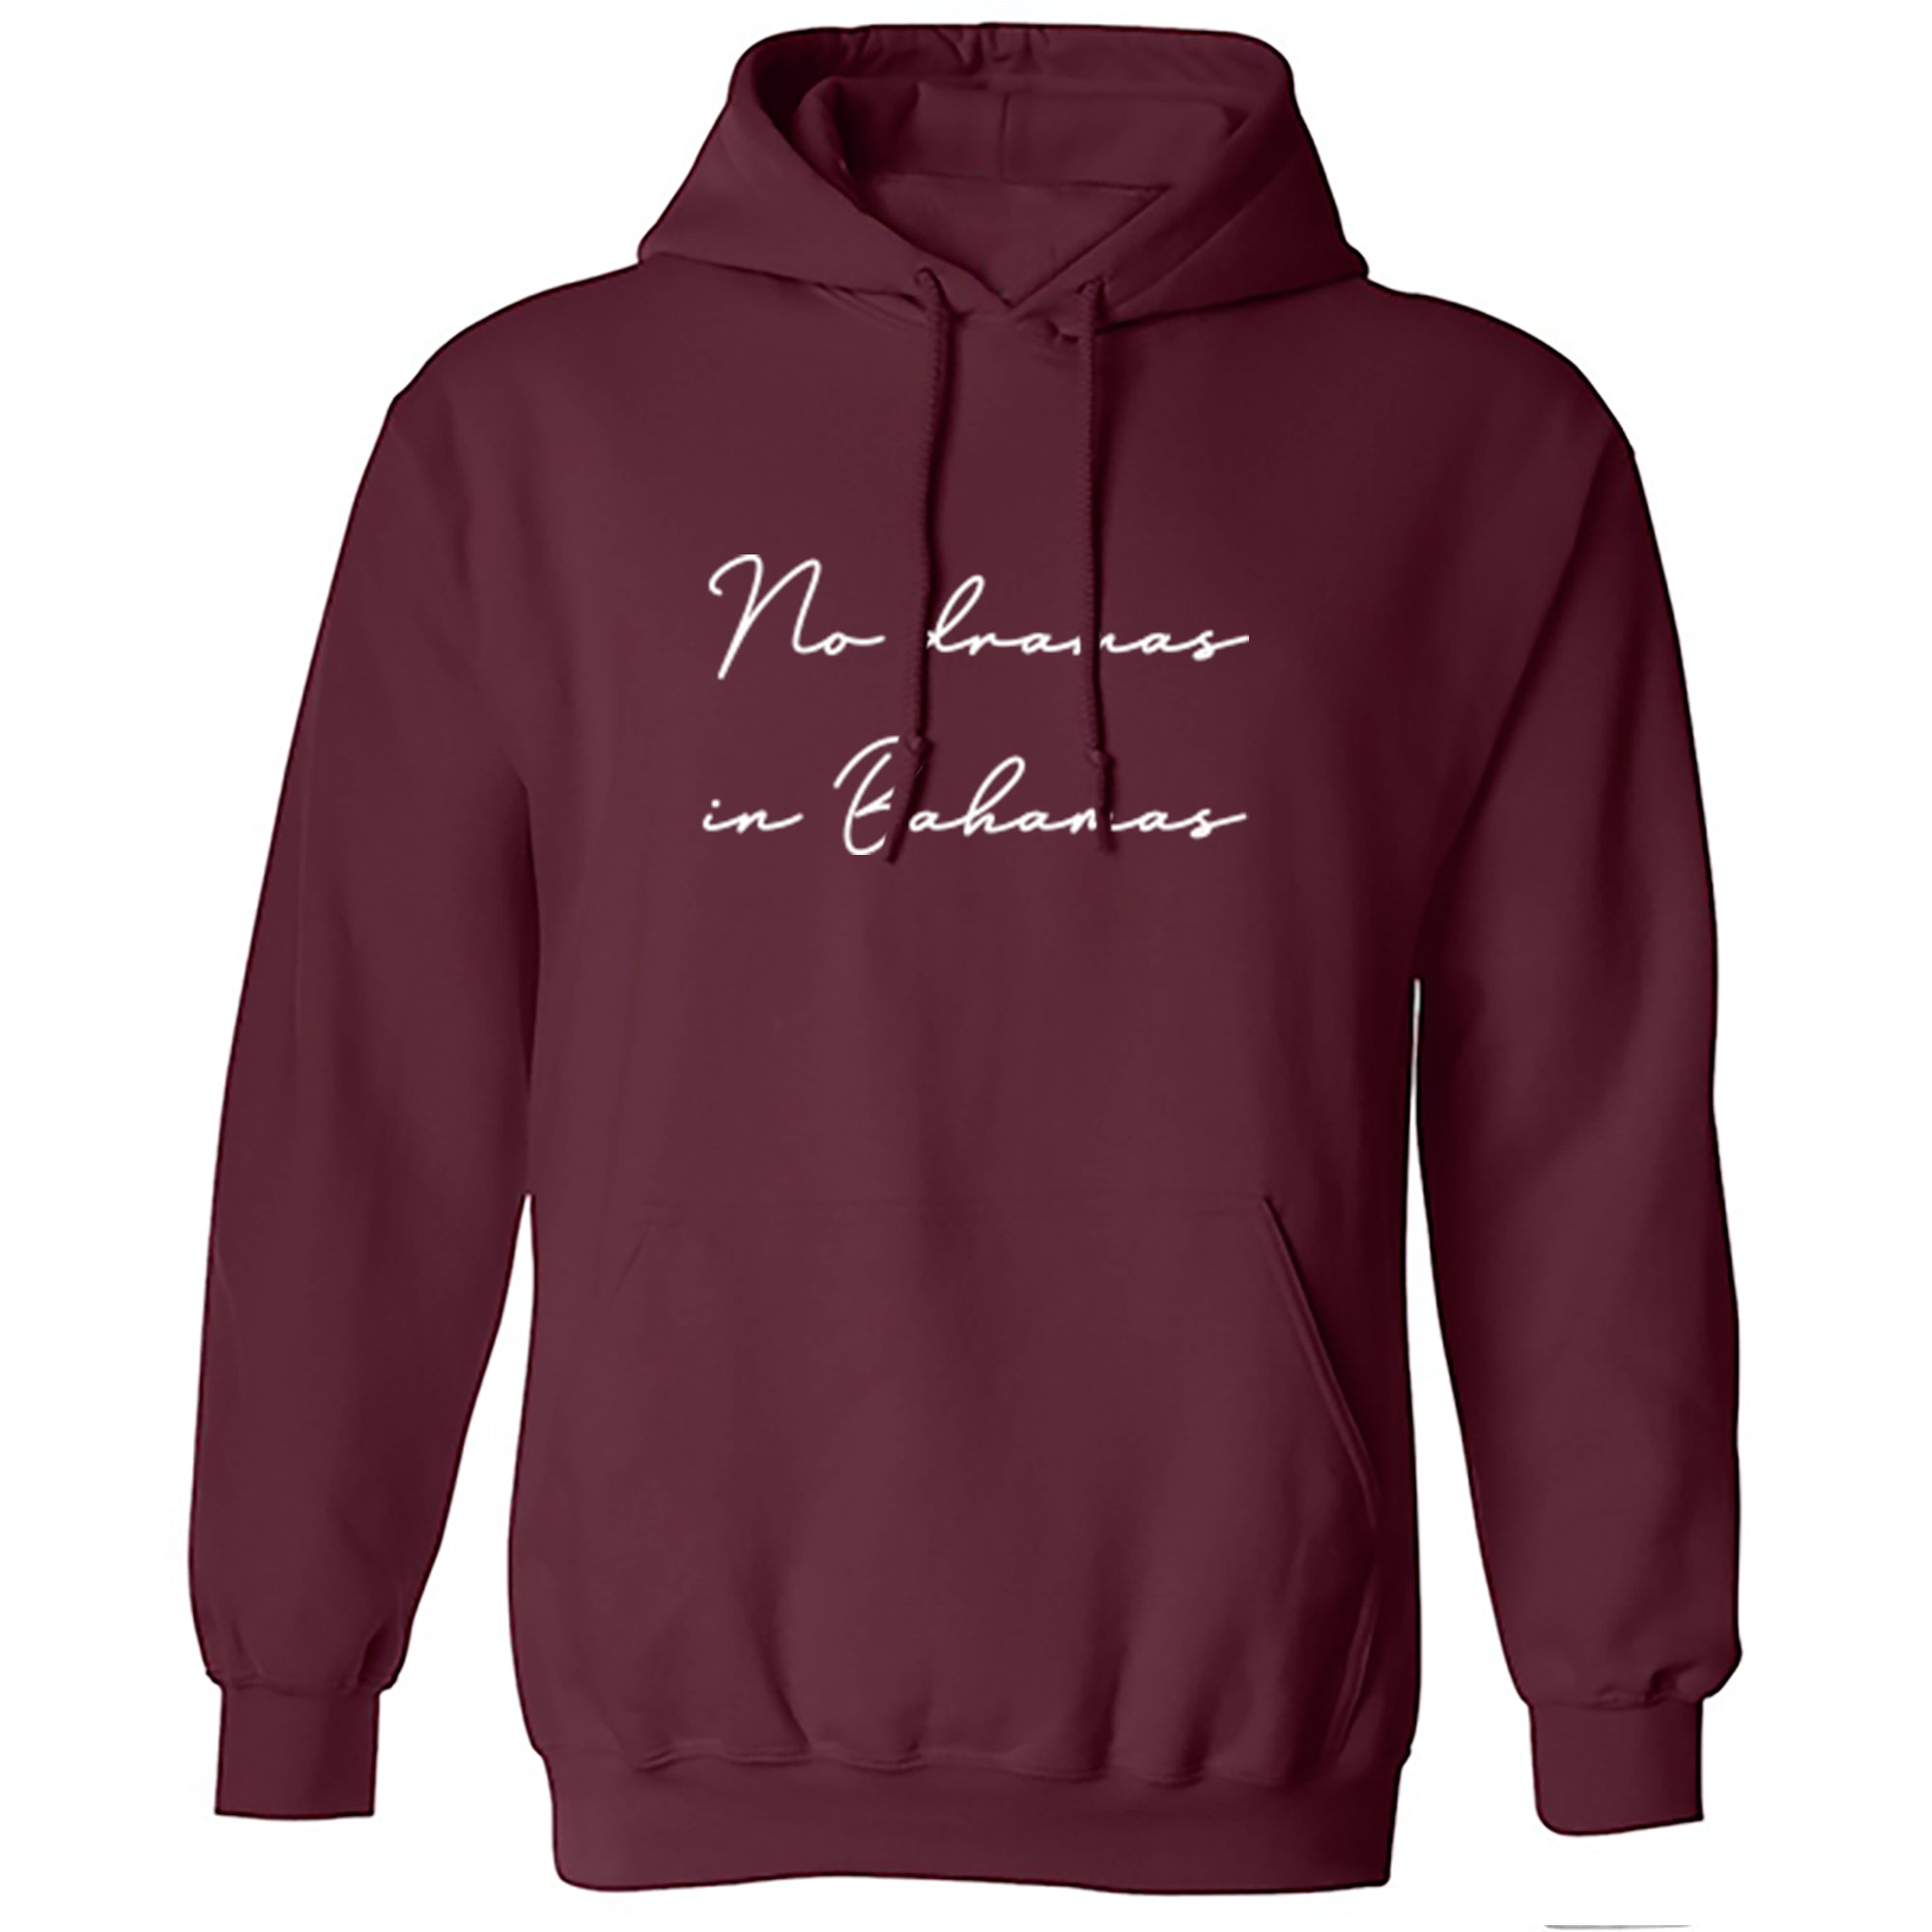 No Dramas In Bahamas Unisex Hoodie S0917 - Illustrated Identity Ltd.